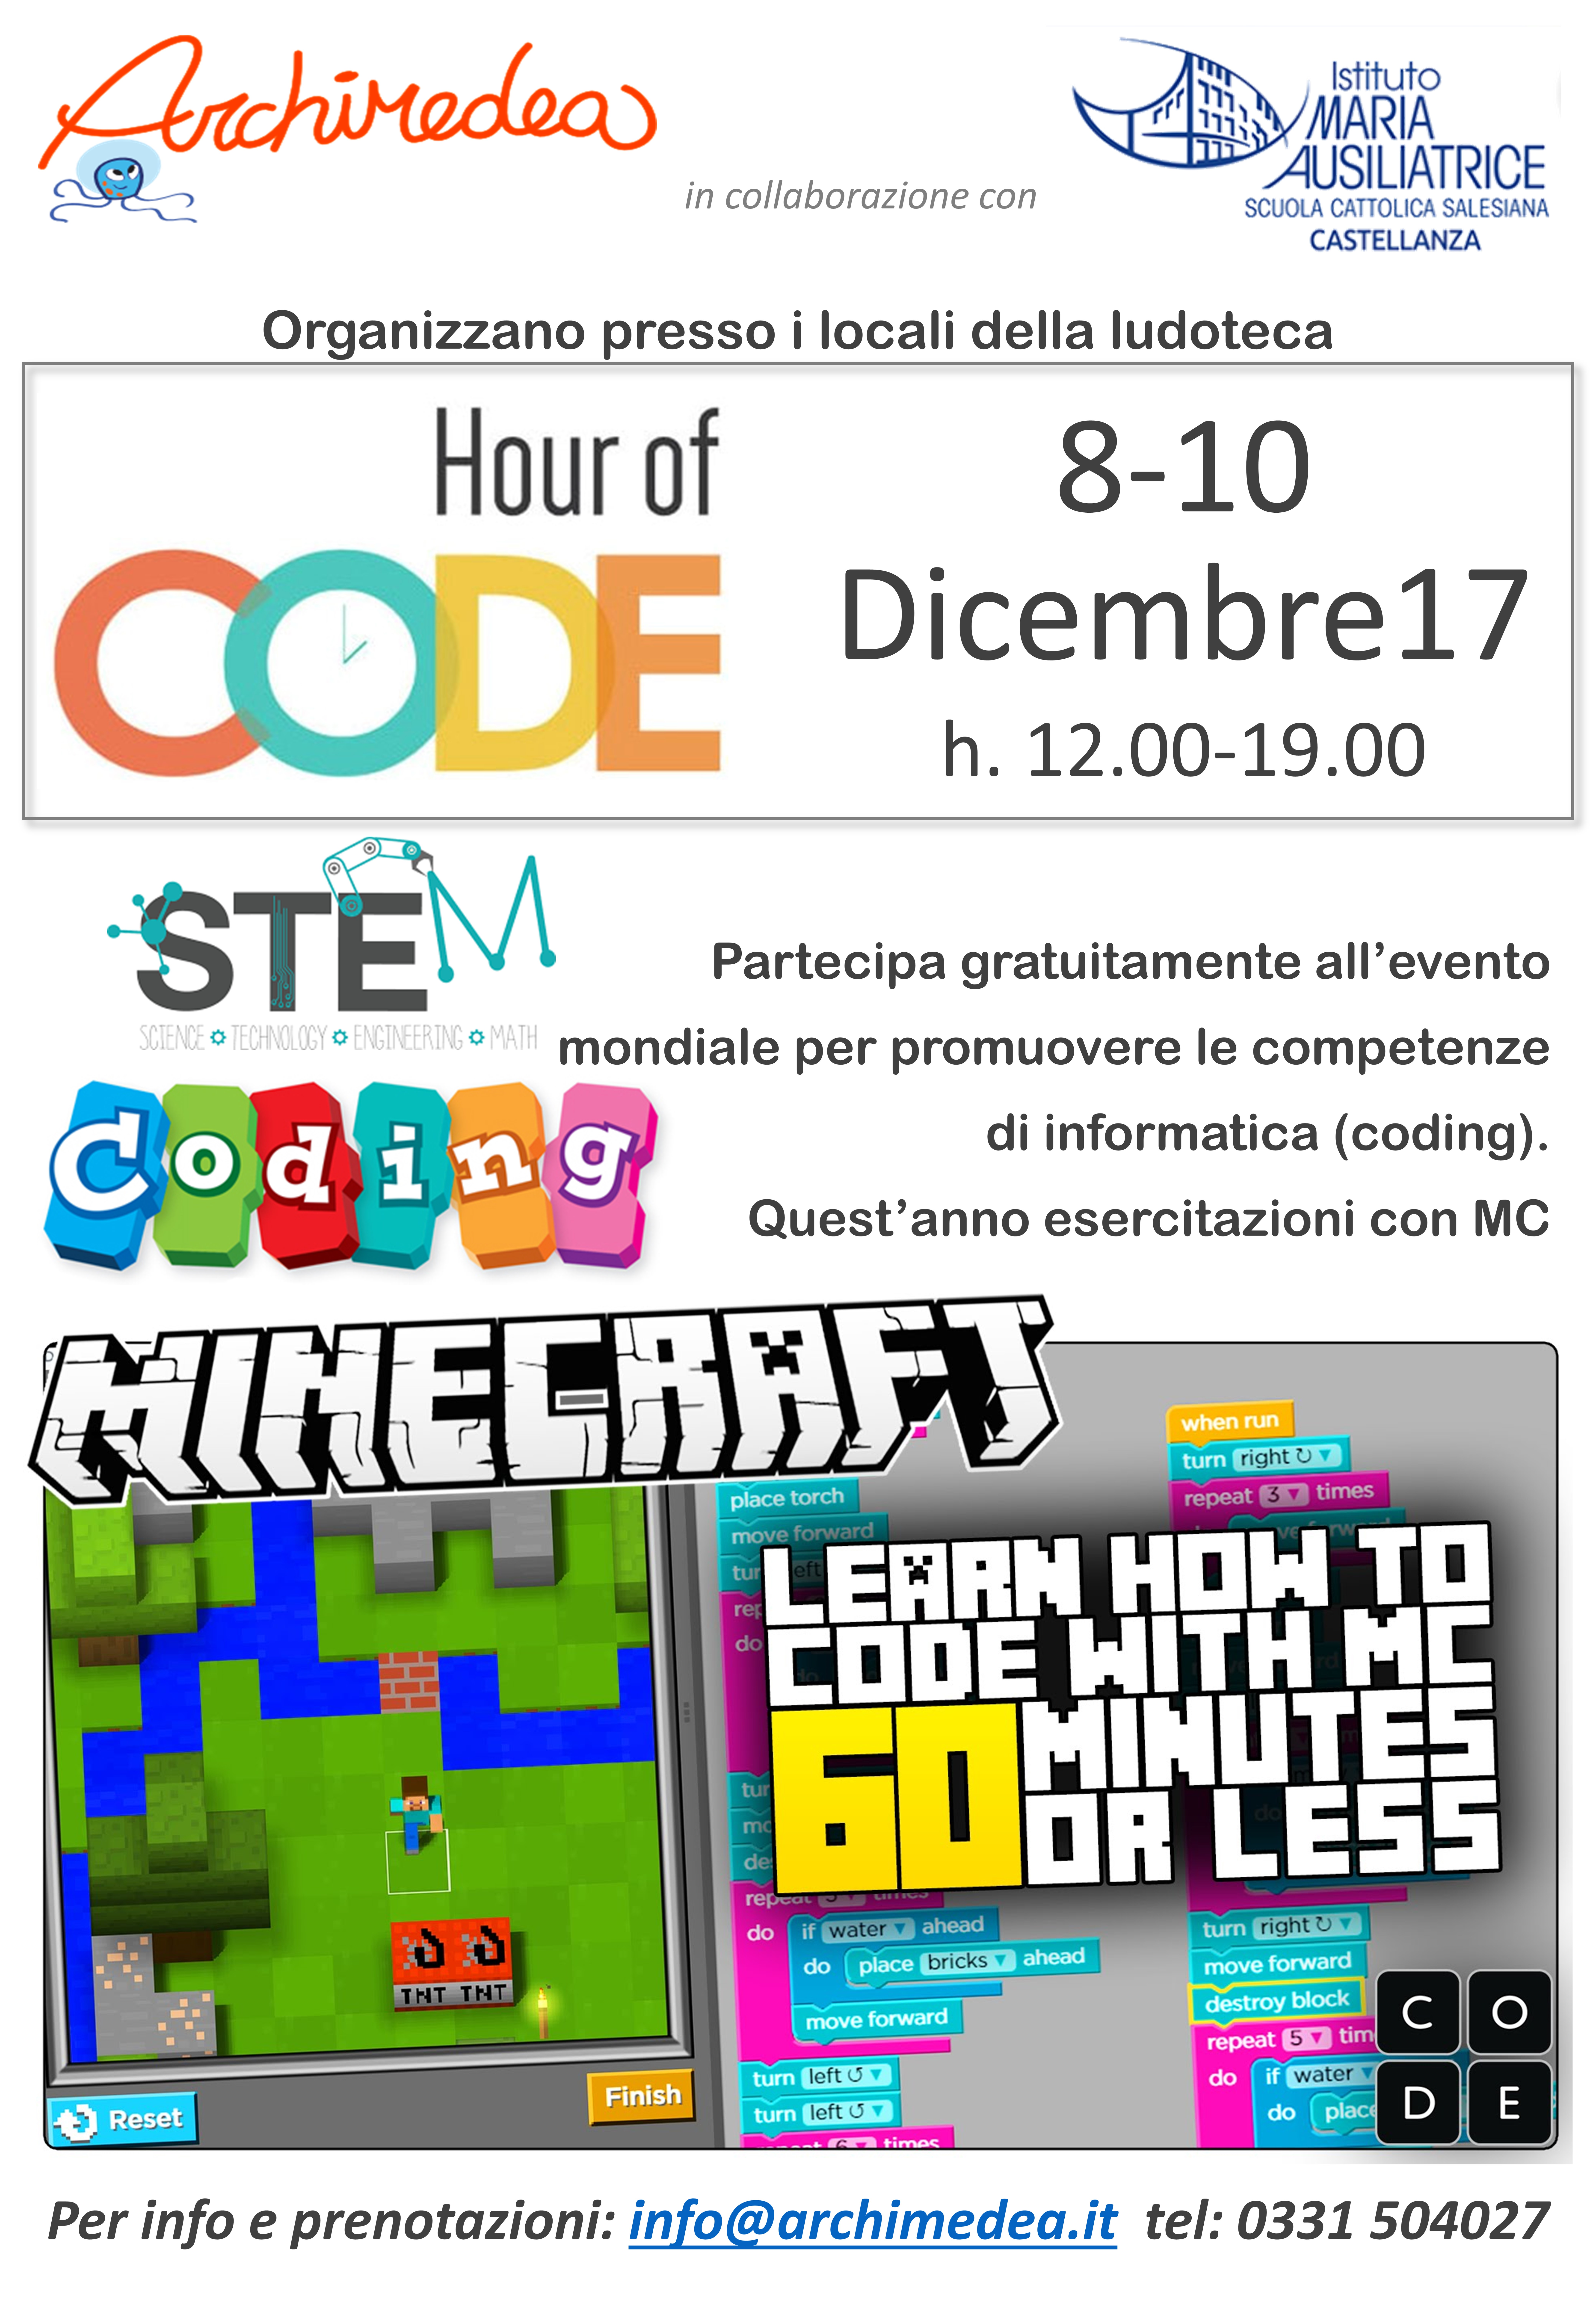 hour of code 2017 archimedea ima